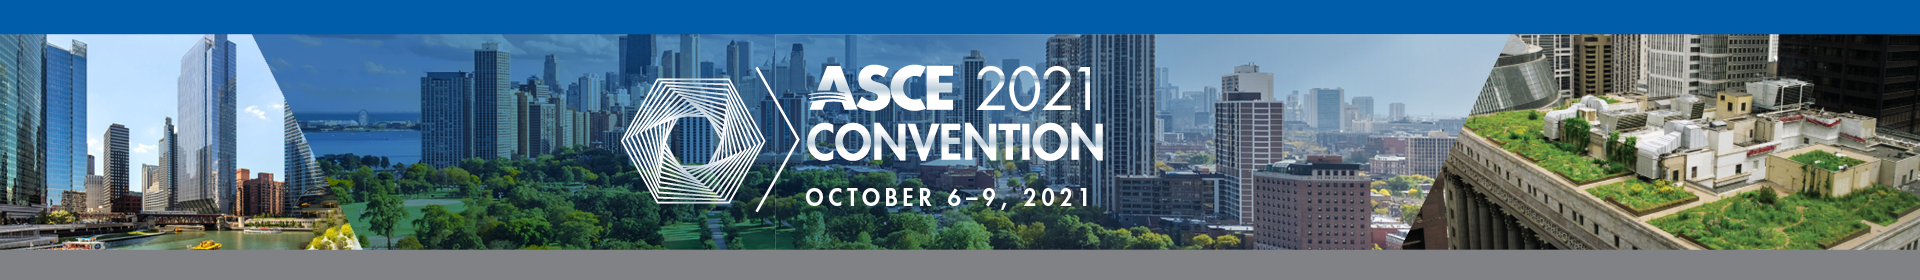 2021 ASCE Annual Convention Event Banner